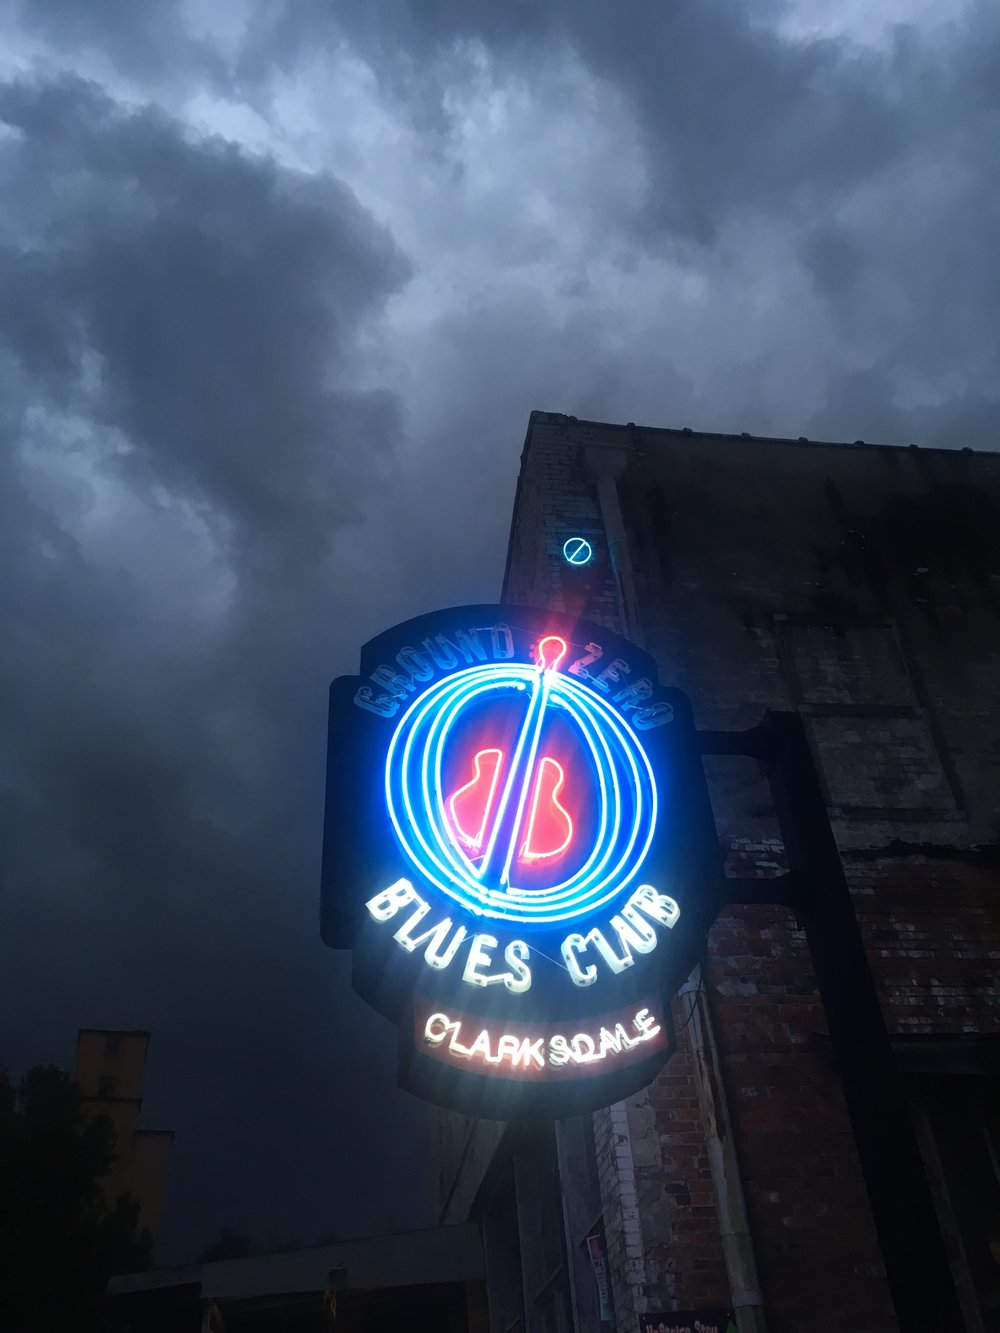 Ground Zero Blues Club in Clarksdale, Mississippi